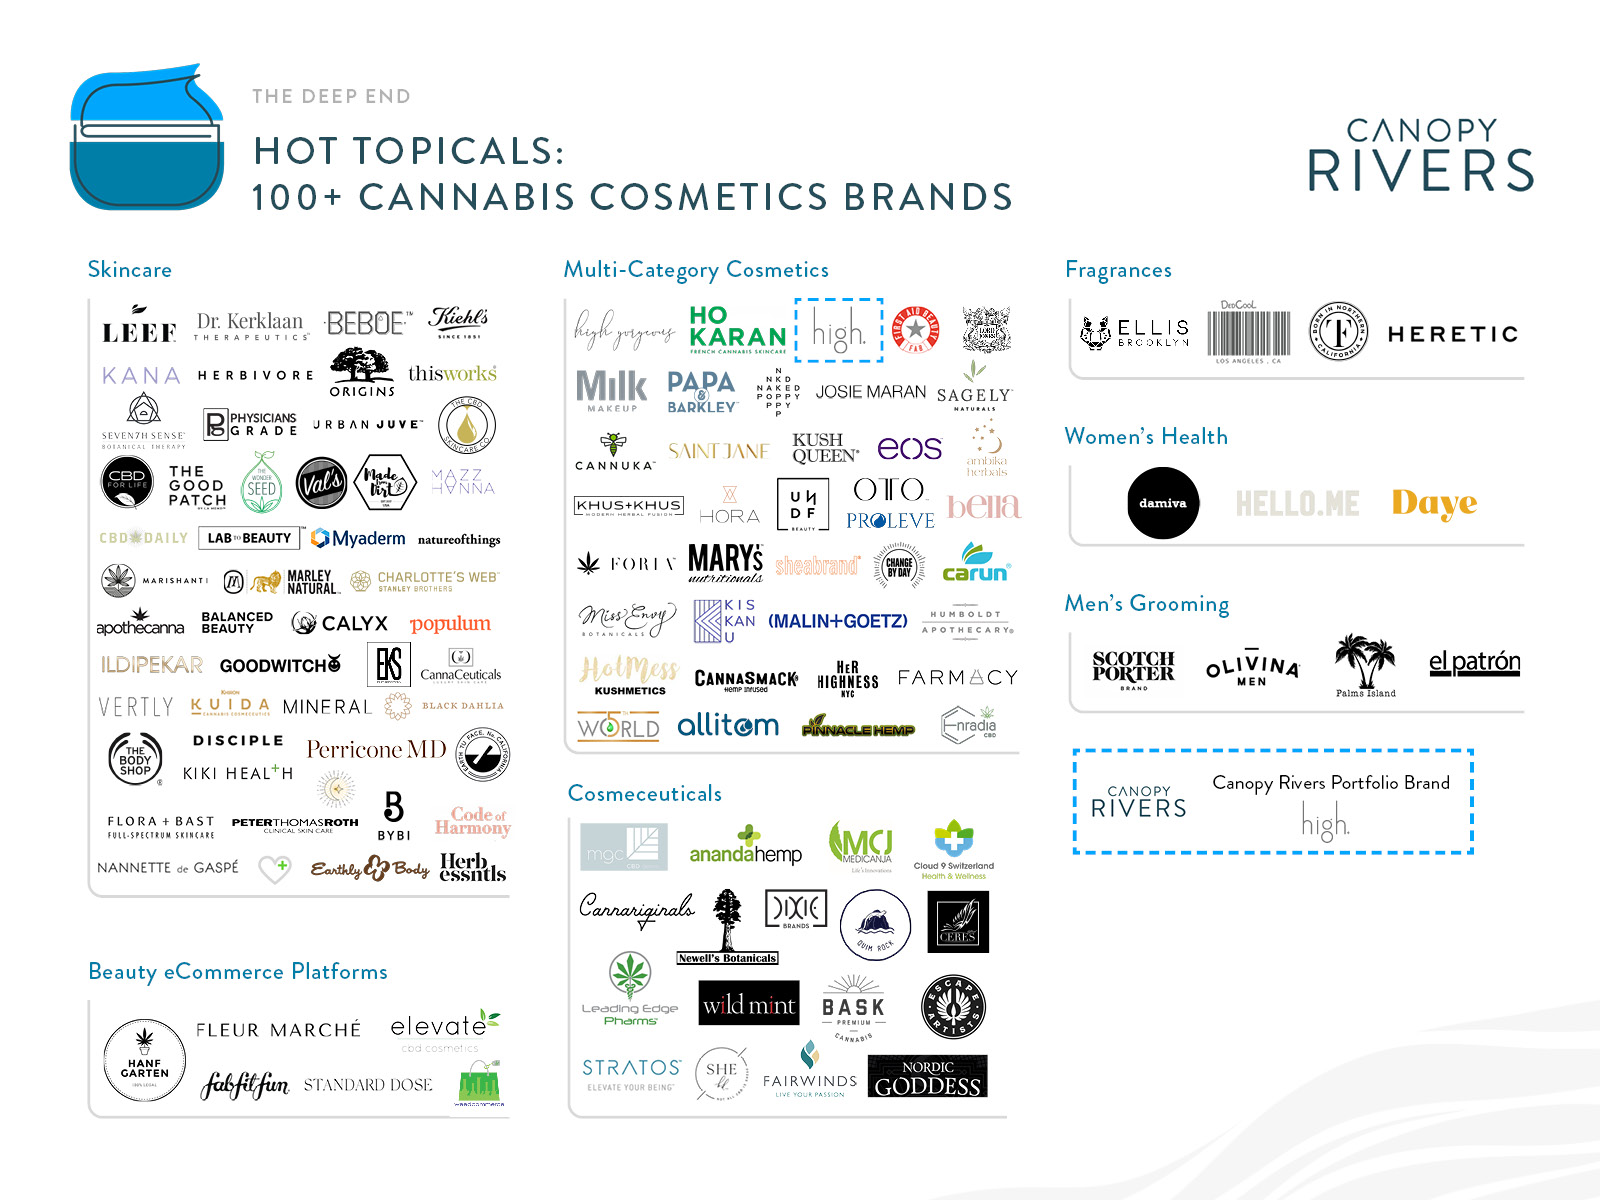 Hot topicals: 100+ cannabis cosmetics brands